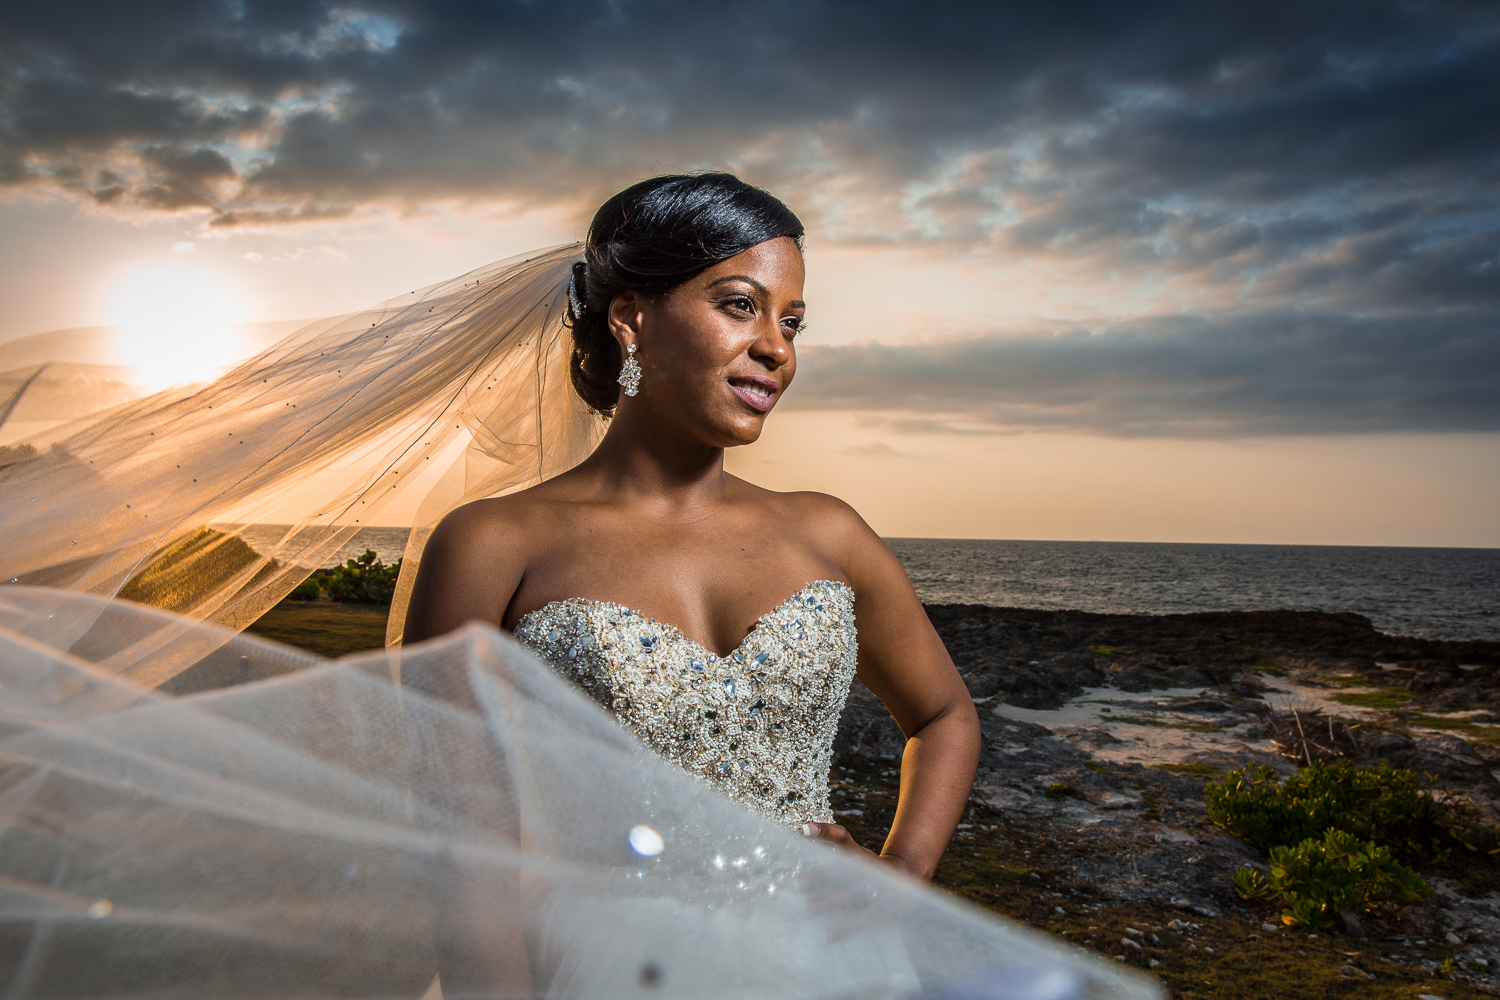 Grand Palladium Resort & Spas, Montego Bay - Destination Wedding - Derrel Ho-Shing Photography